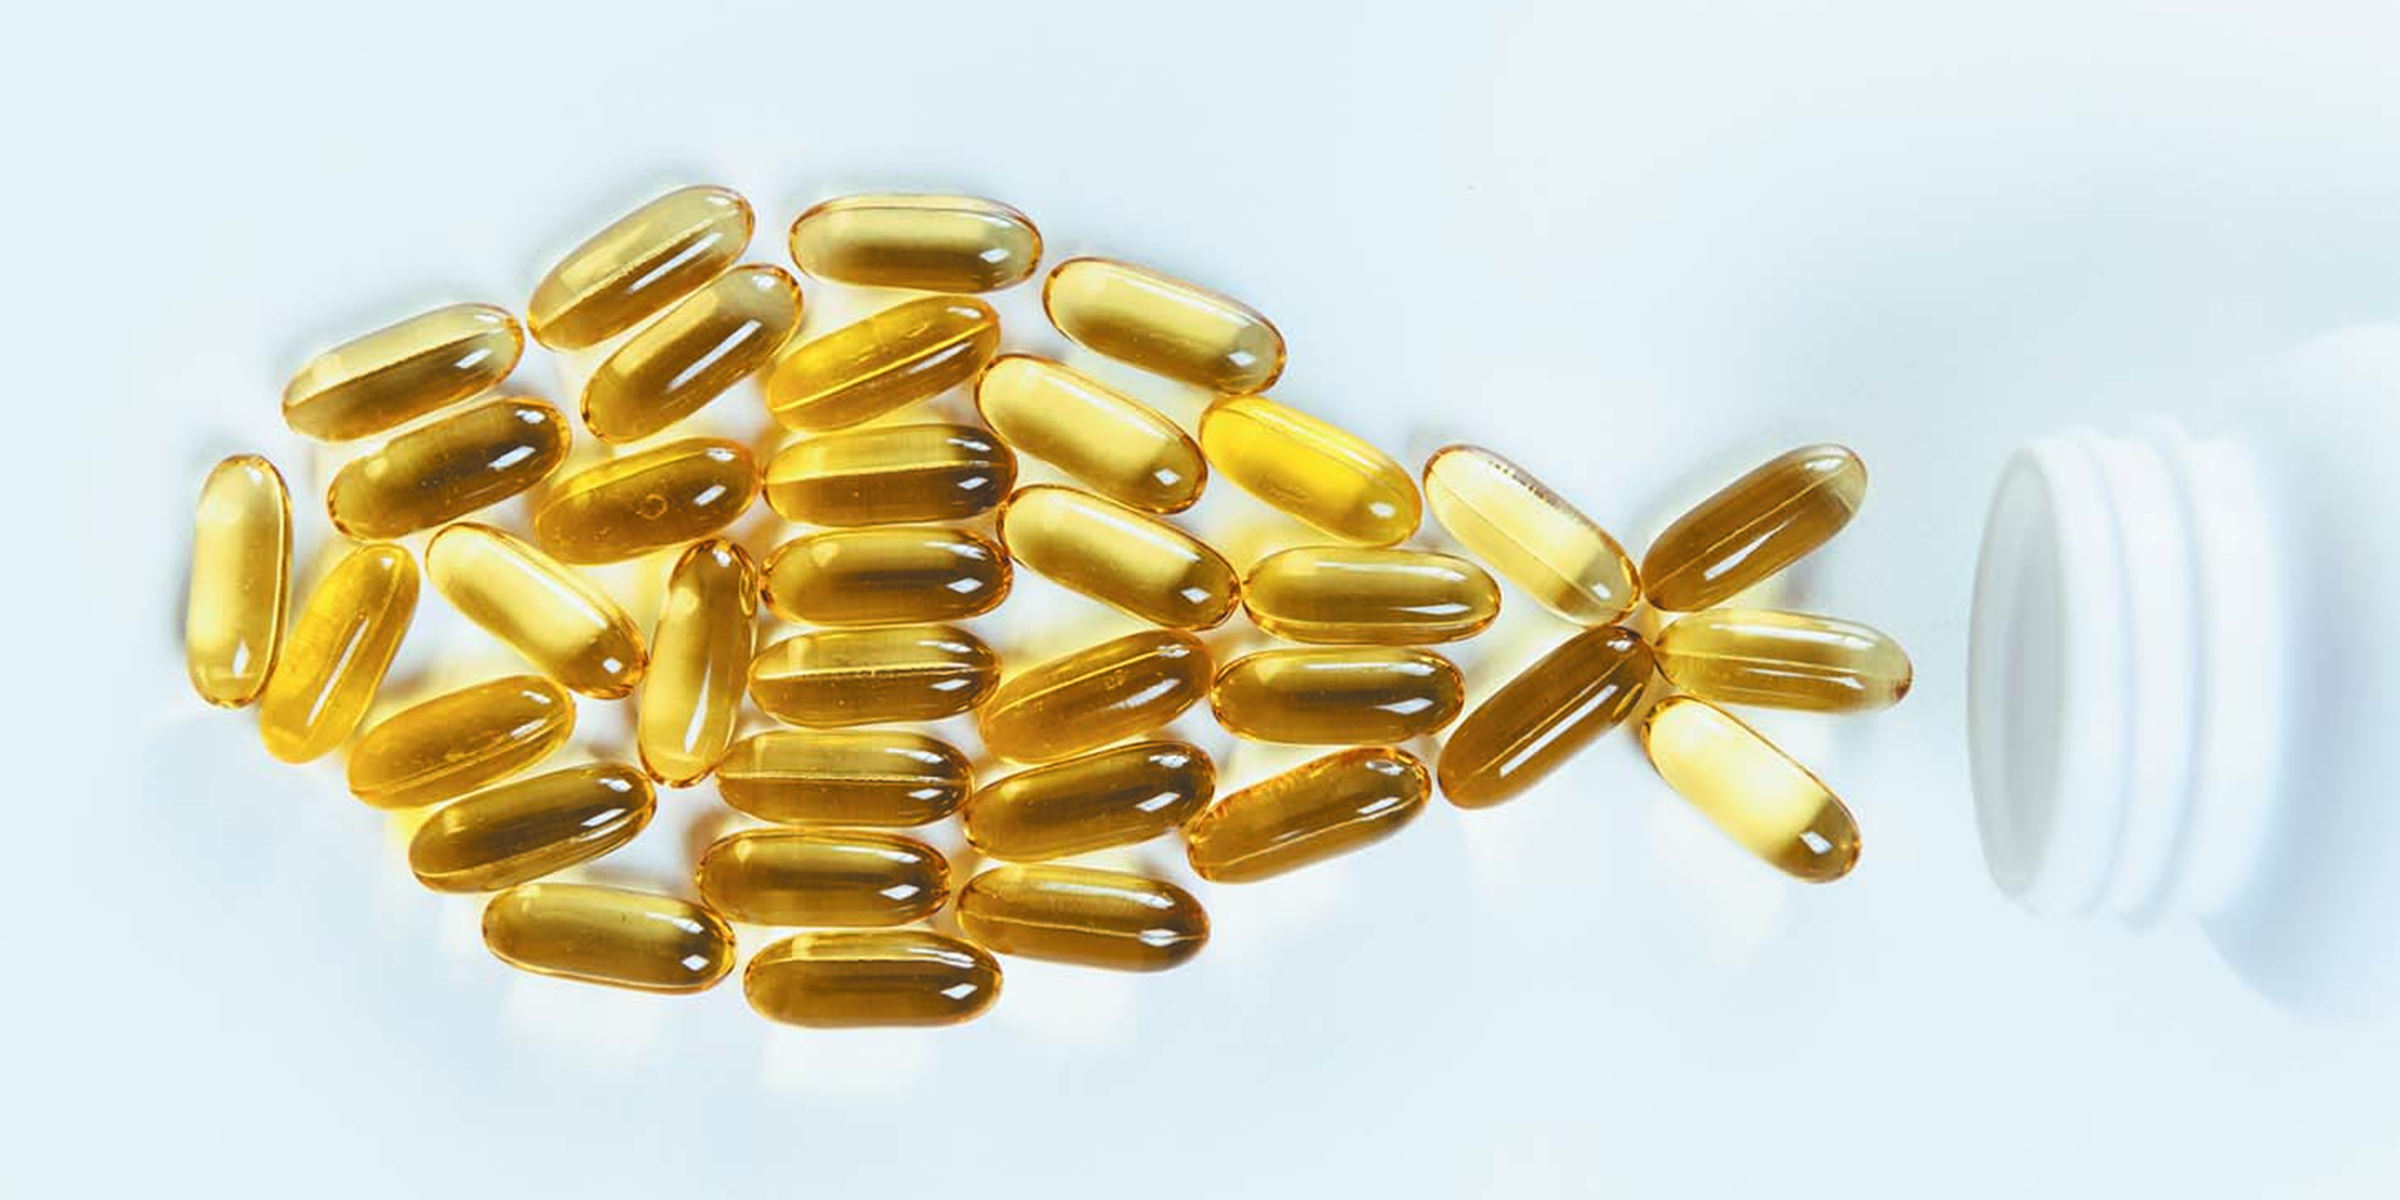 fish oil with omega 3 fatty acids  for ms patients from fish oil supplements